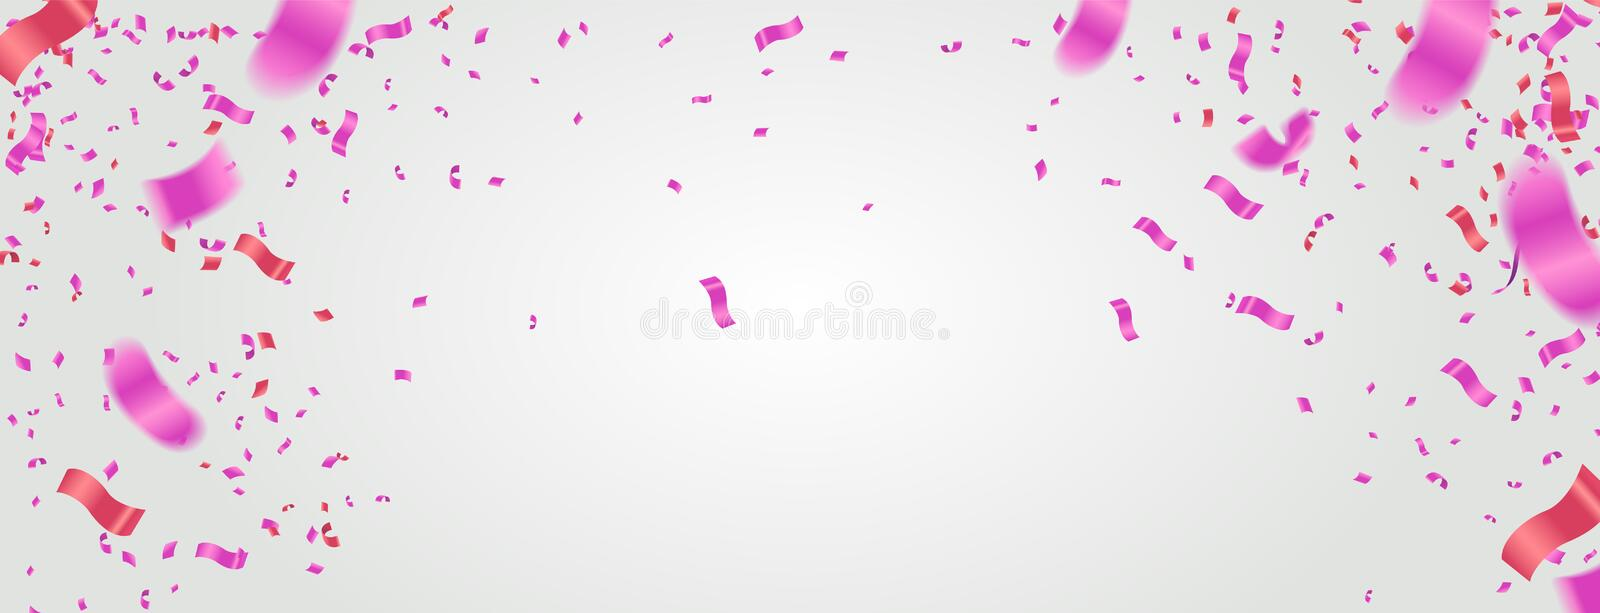 Many Falling Pink Tiny and red Tiny Confetti Isolated On White Background. Vector illustration vector illustration